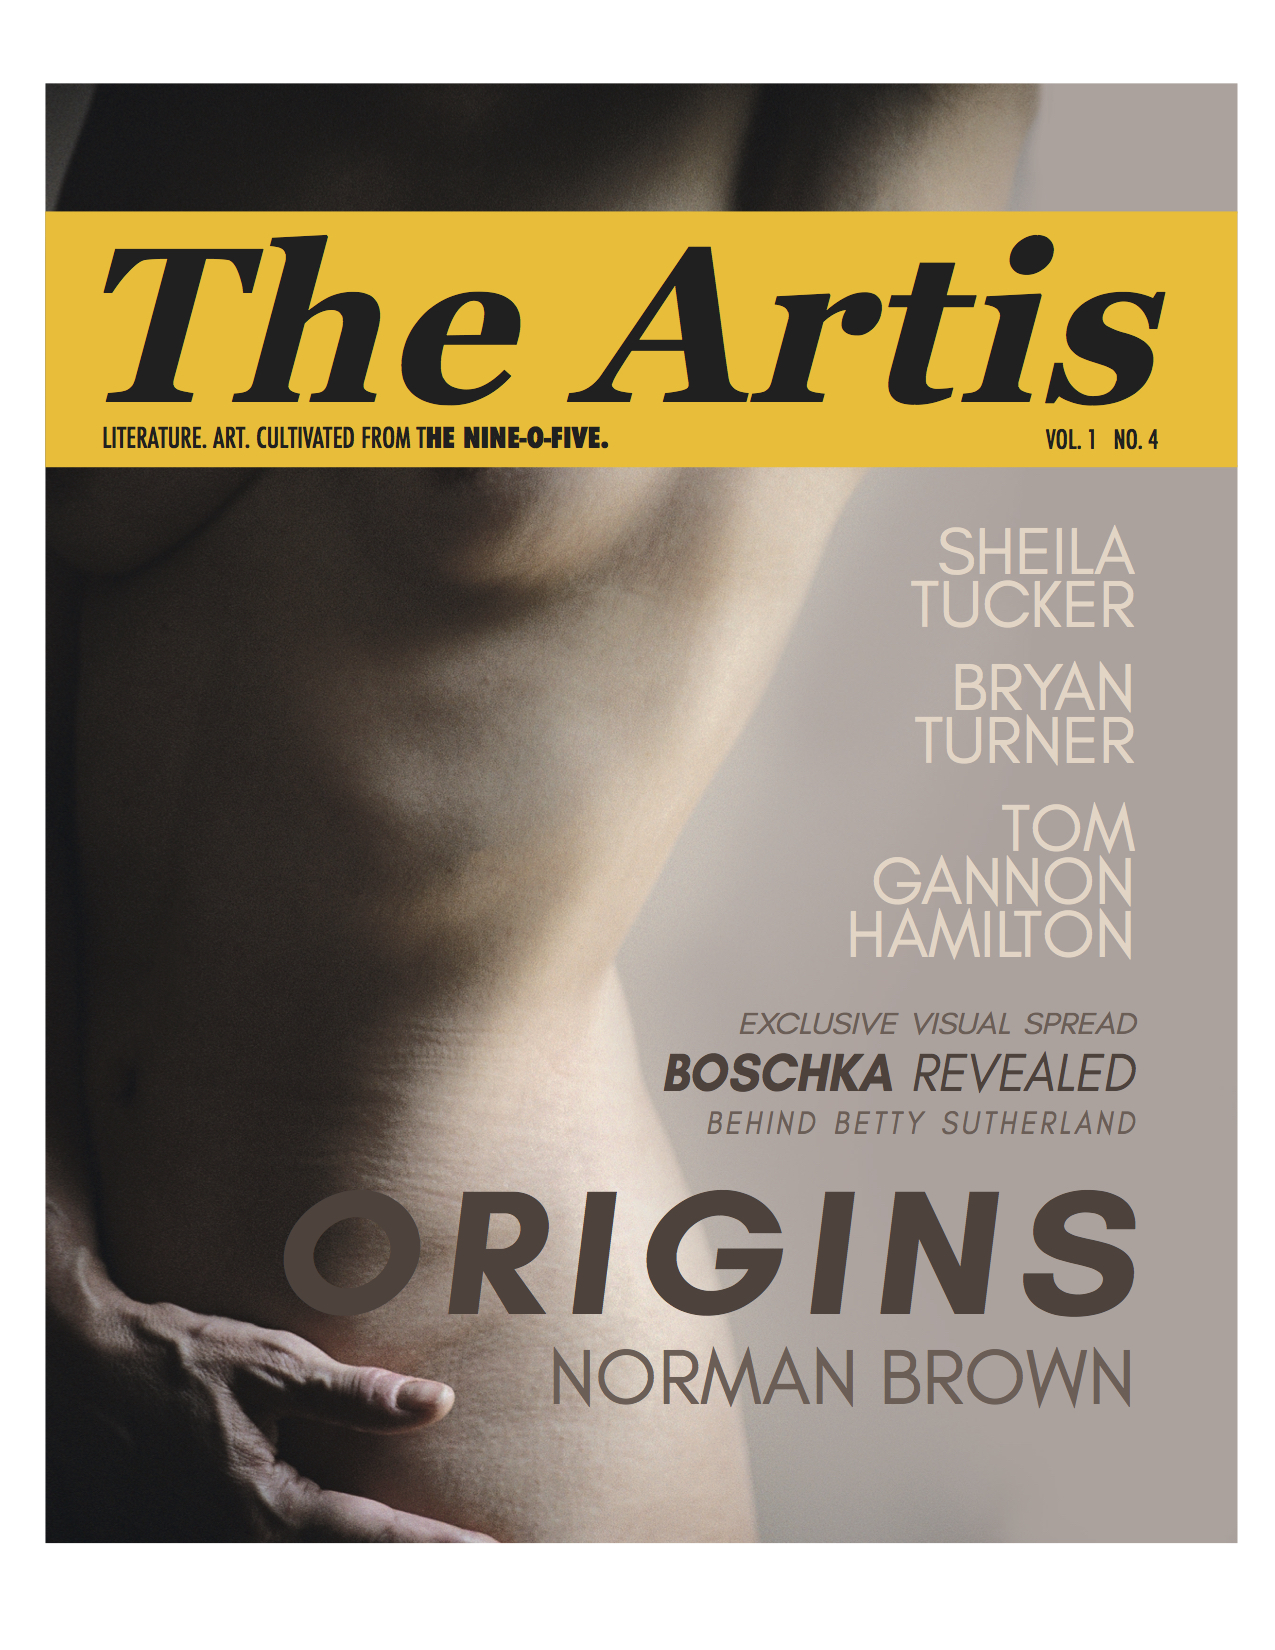 Order past issues here or find The Artis magazine in Indigo Spirit in Oakville, ON, and other bookstores and libraries. - Preview past issues of The Artis in the Archives tab up above. See Artis 3 here